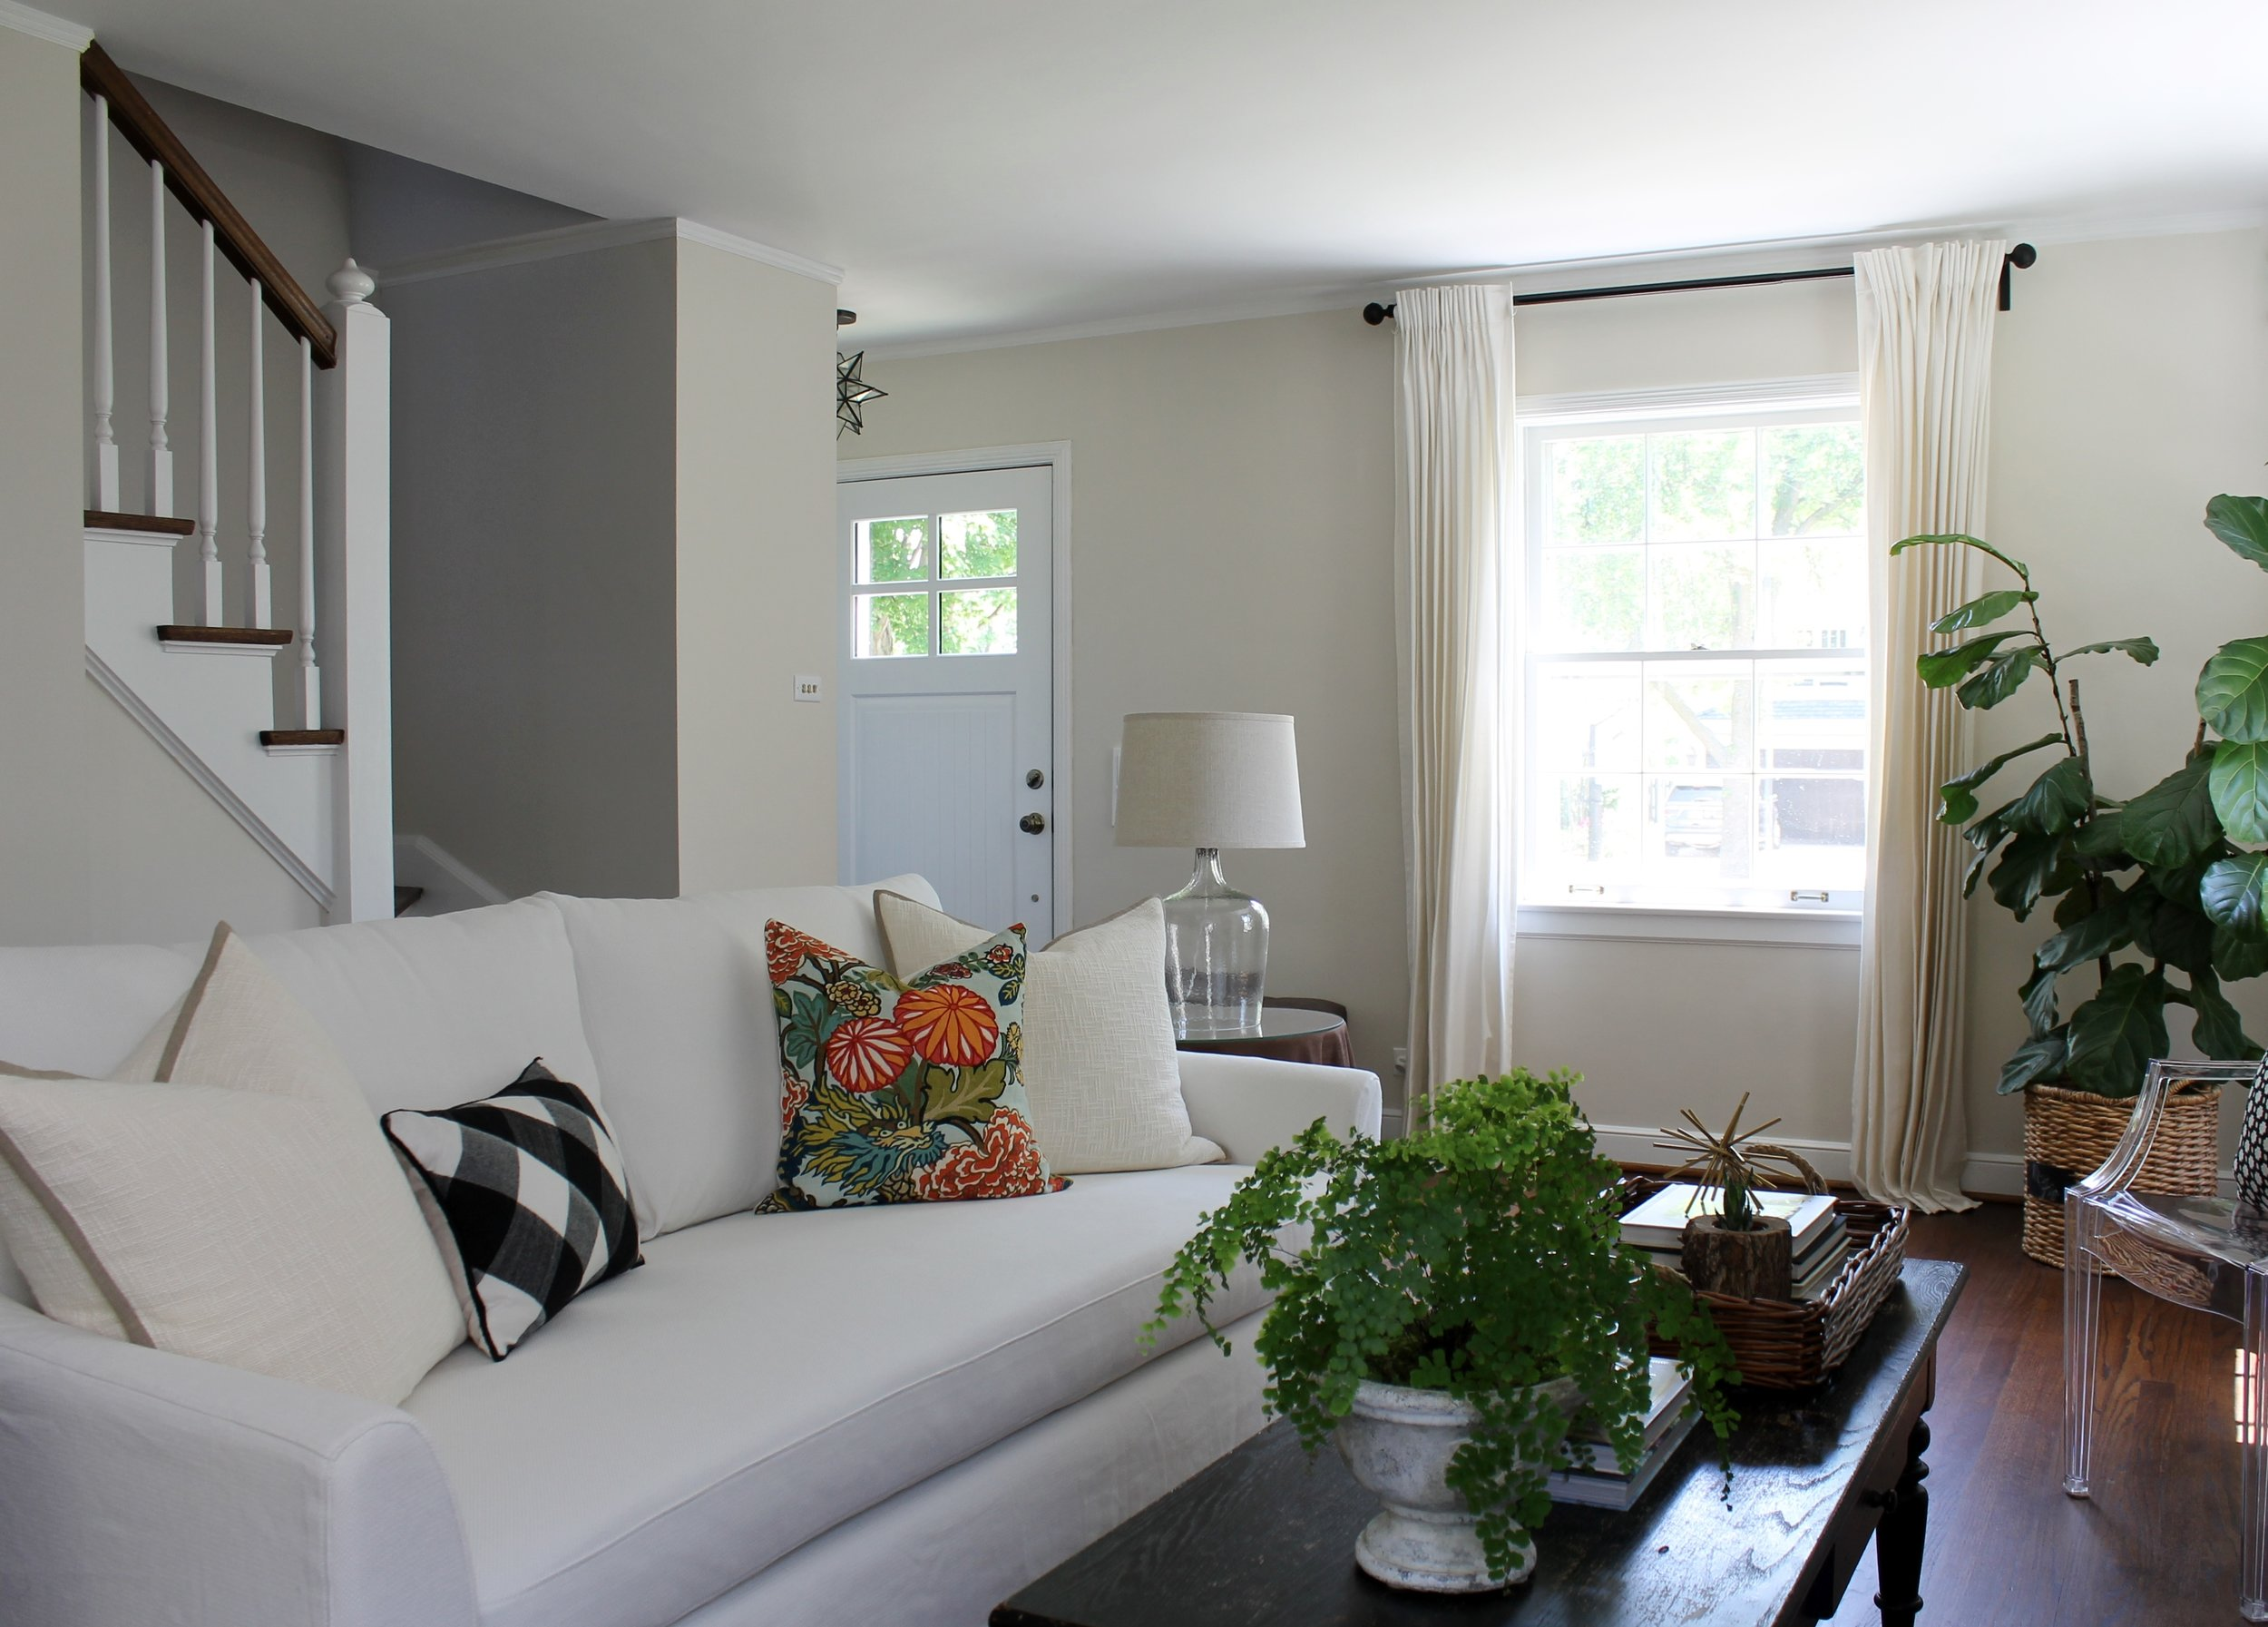 Small Home Style Cape Cod Chicago Home Tour Katrina Blair Interior Design Small Home Style Modern Livingkatrina Blair